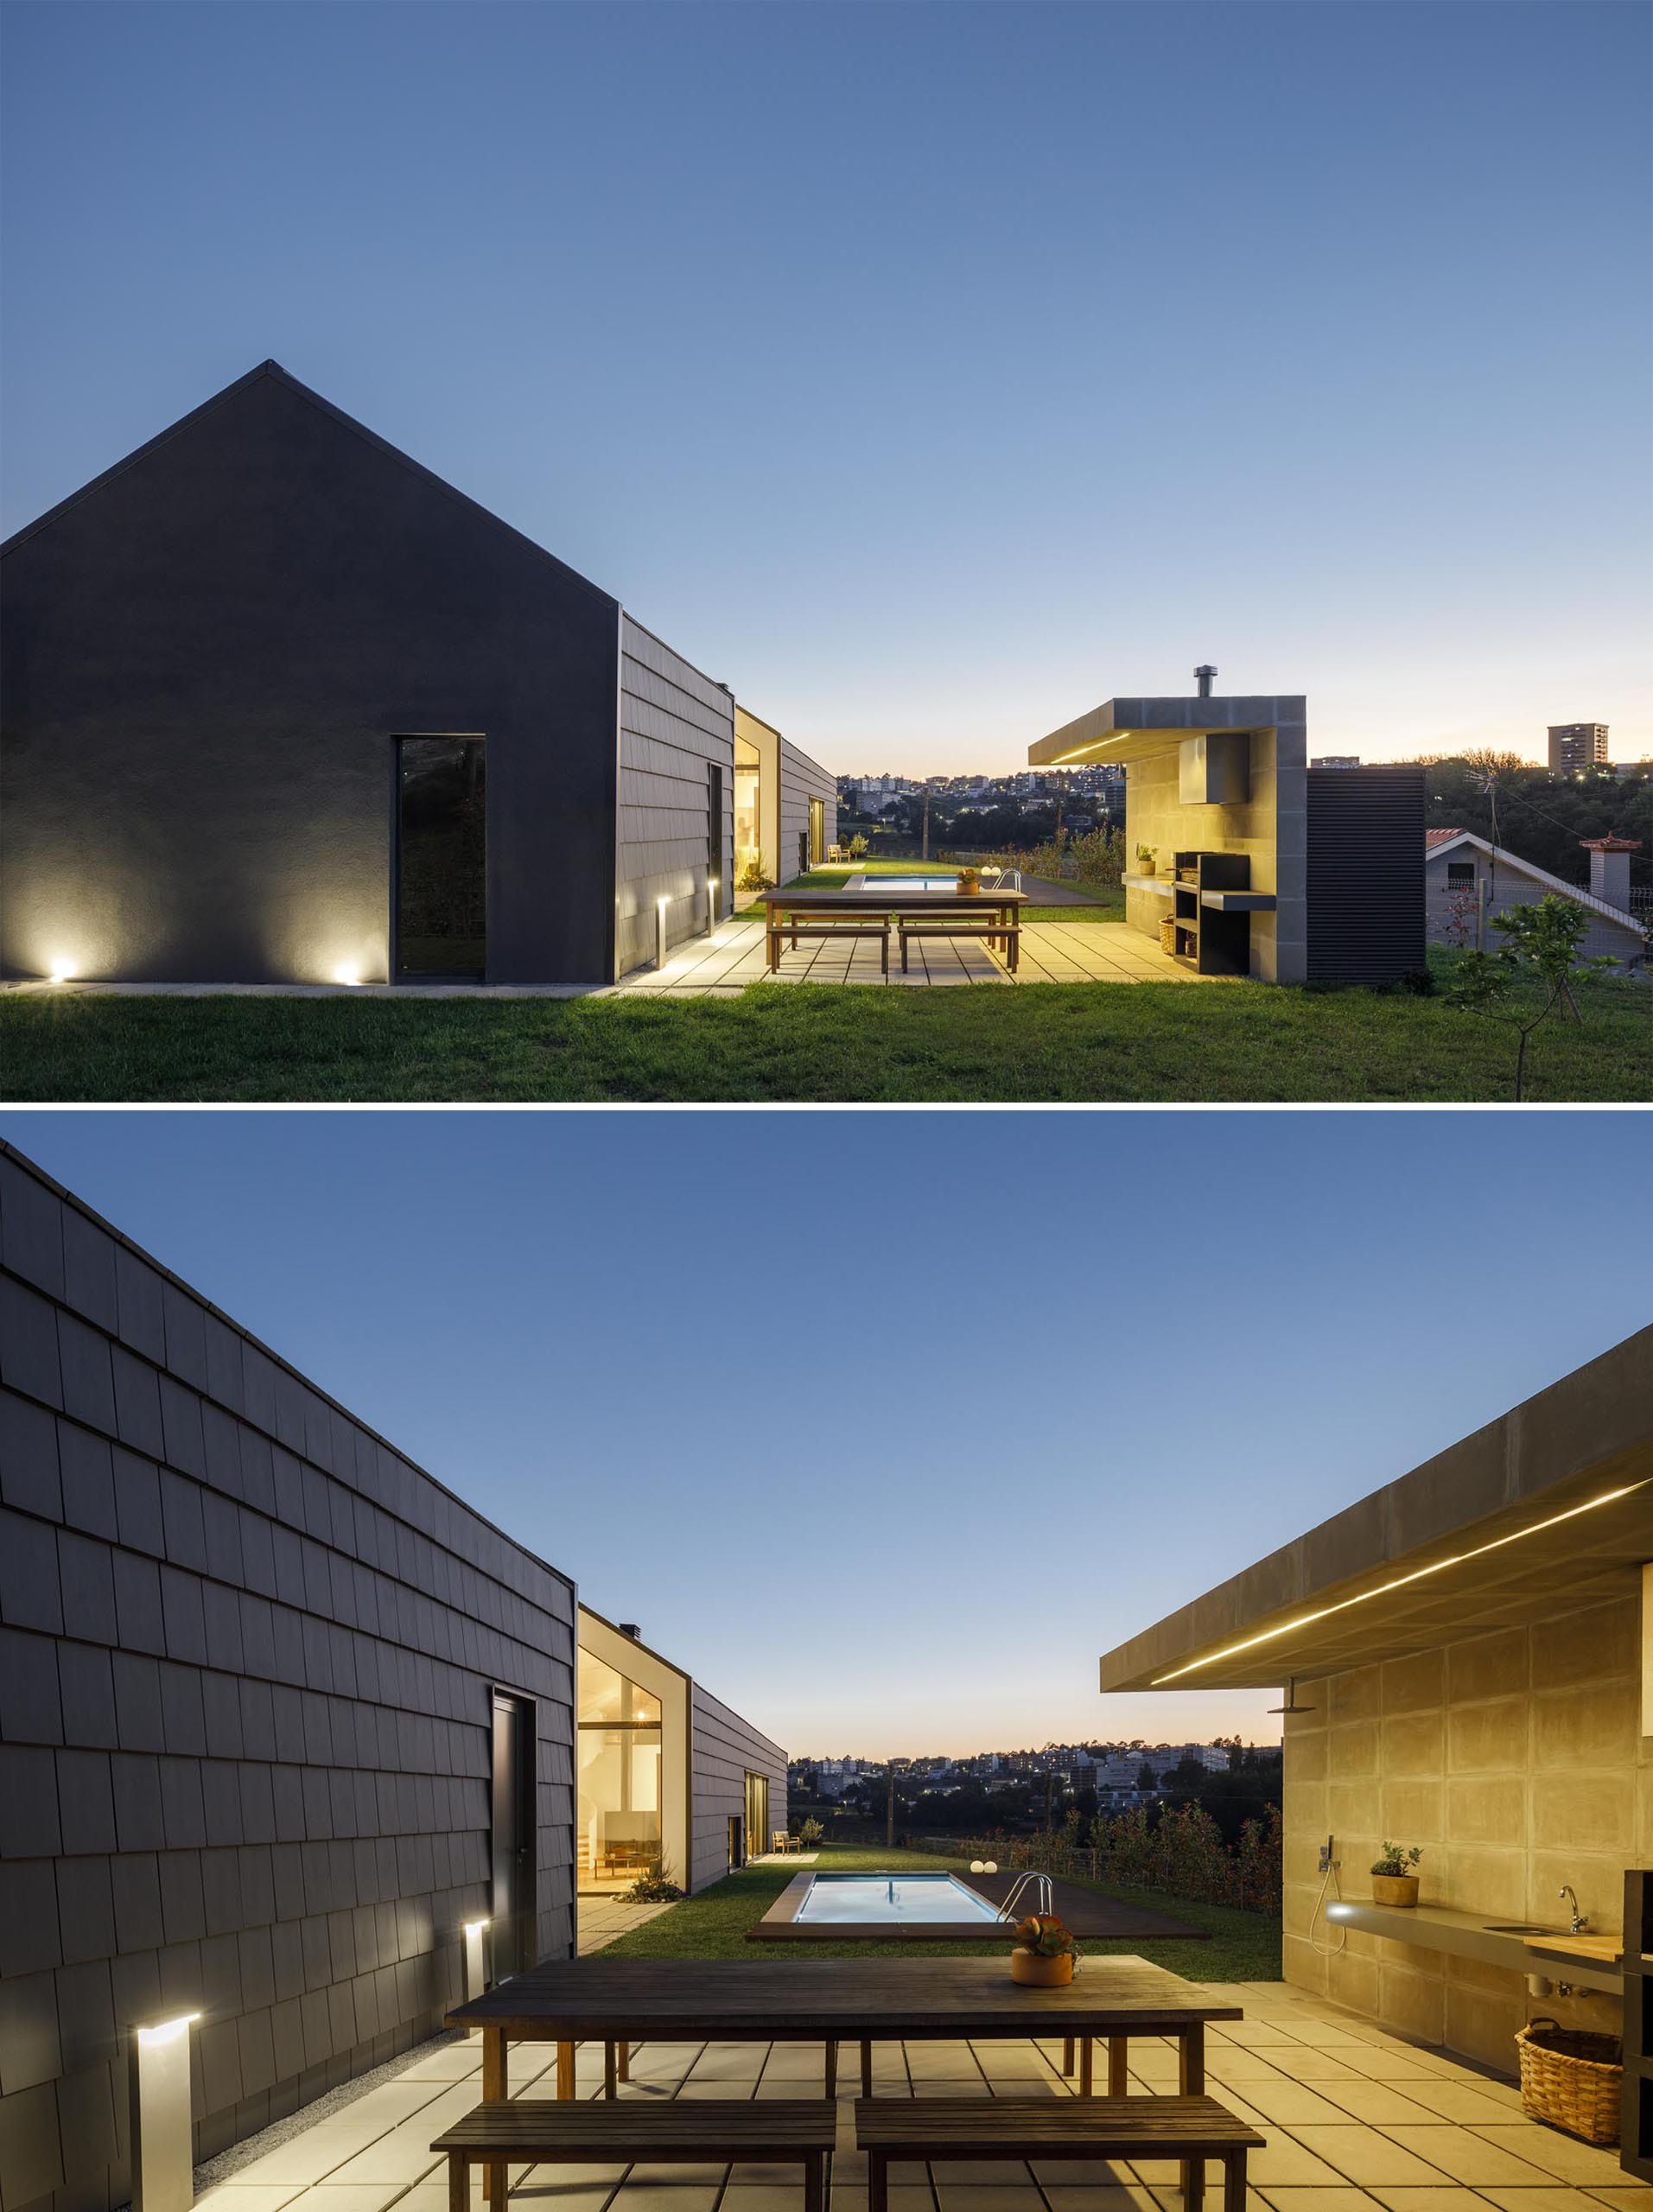 A modern house with a patio for outdoor dining and kitchen.